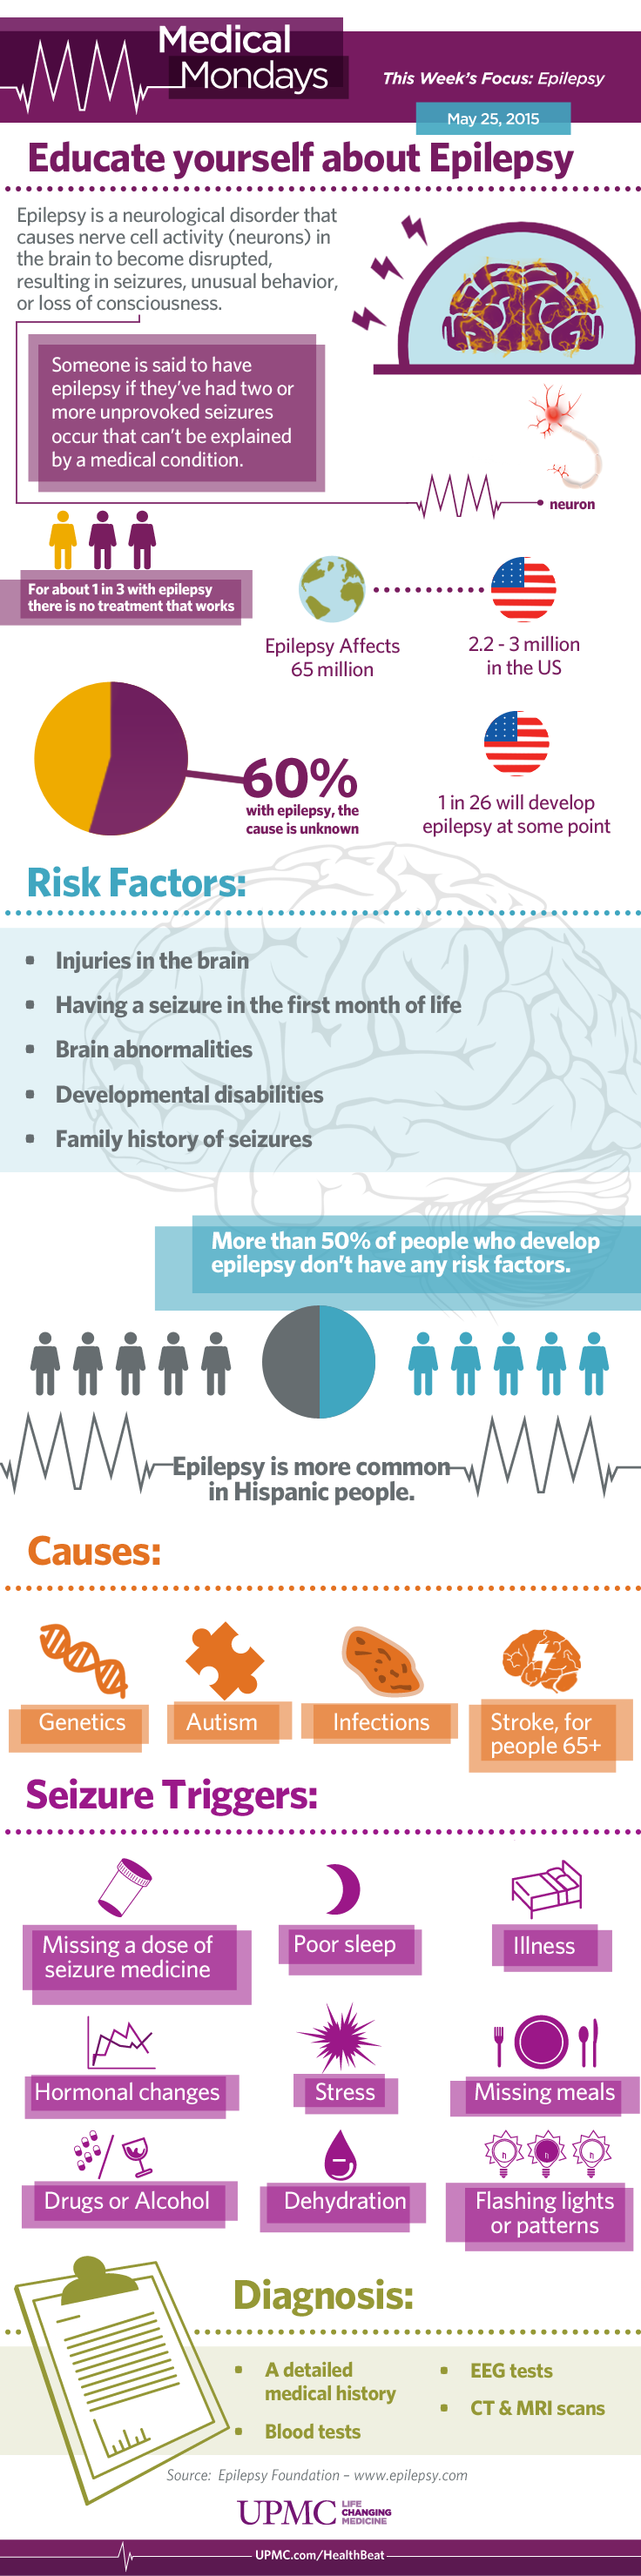 seizure action plan template - infographic epilepsy causes and risk factors upmc